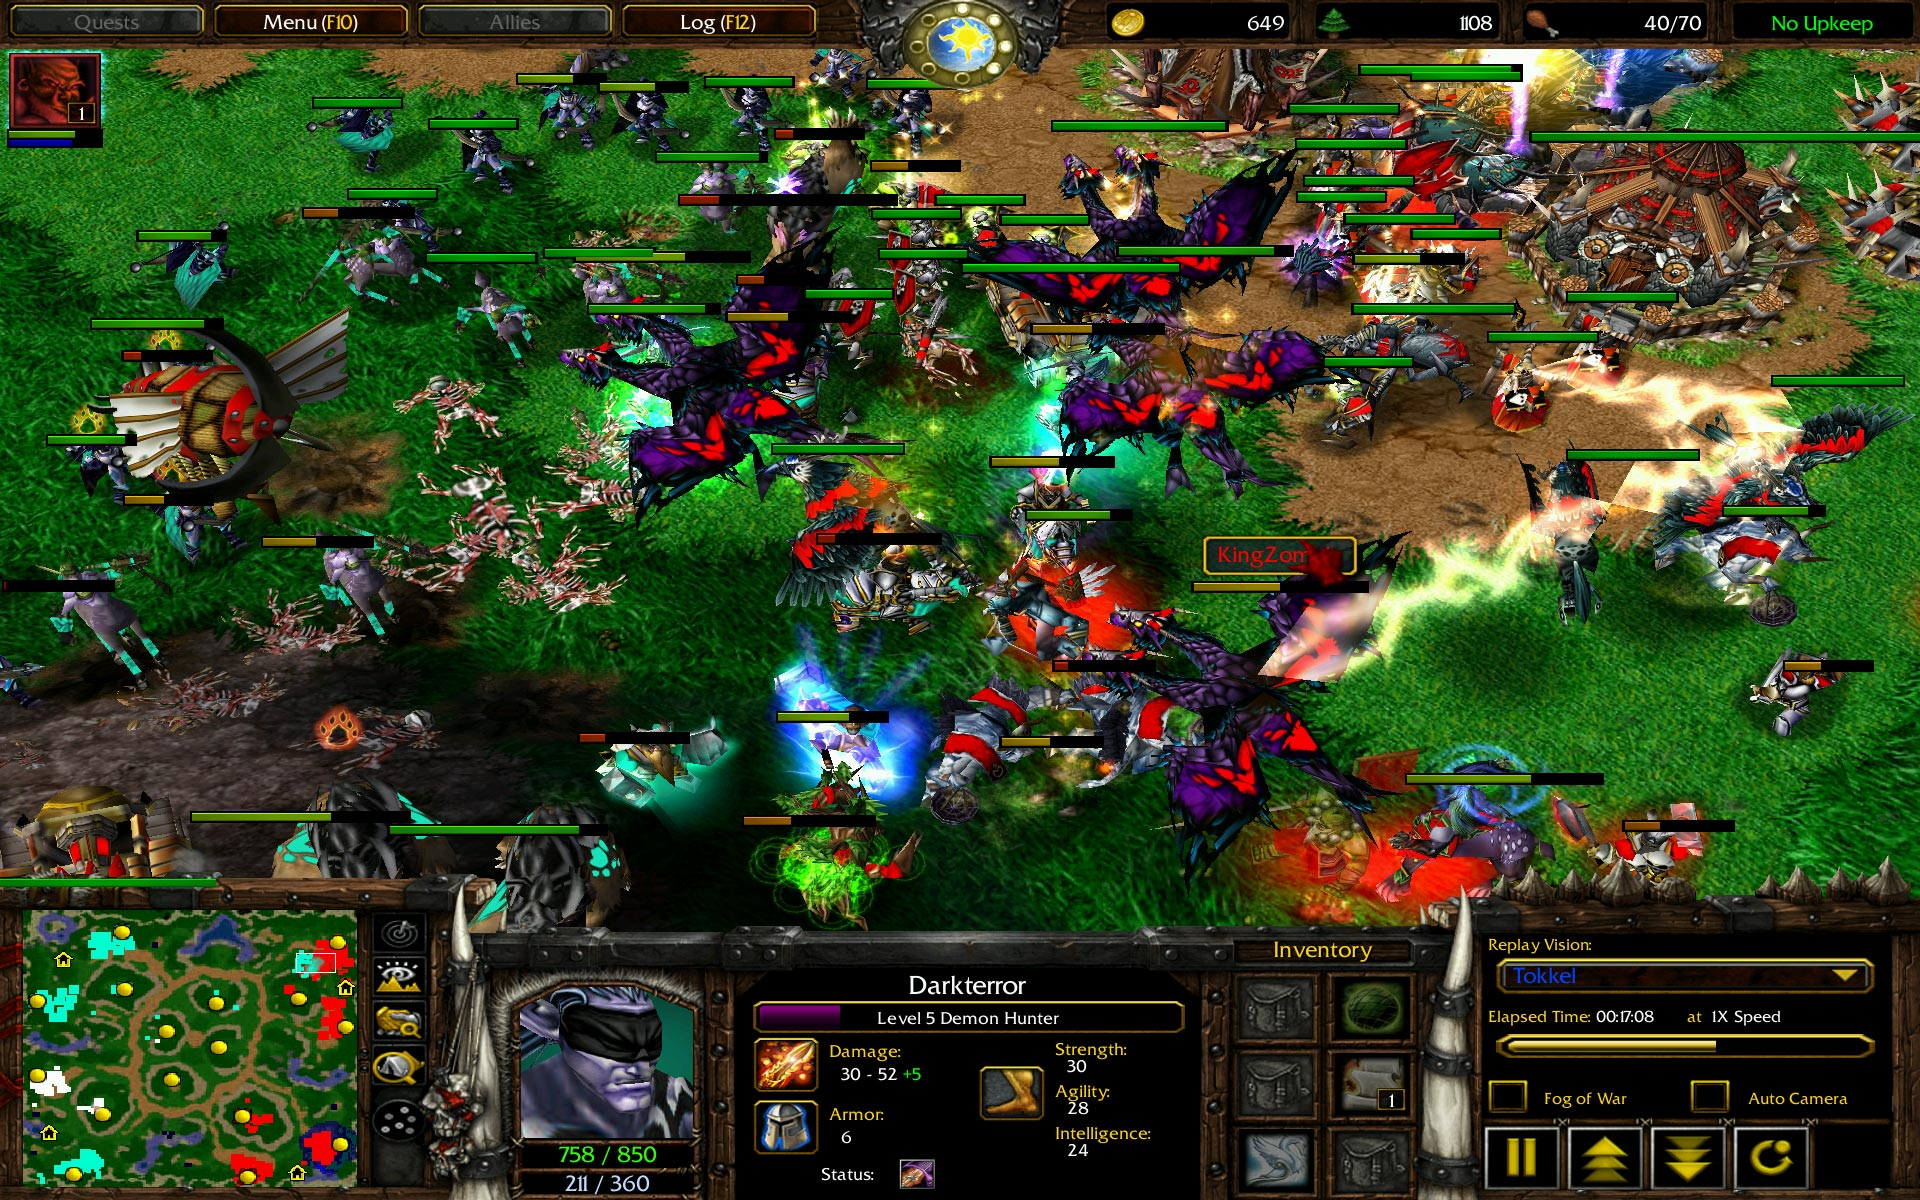 warcraft-3-4on4-random-team-clash-screenshot